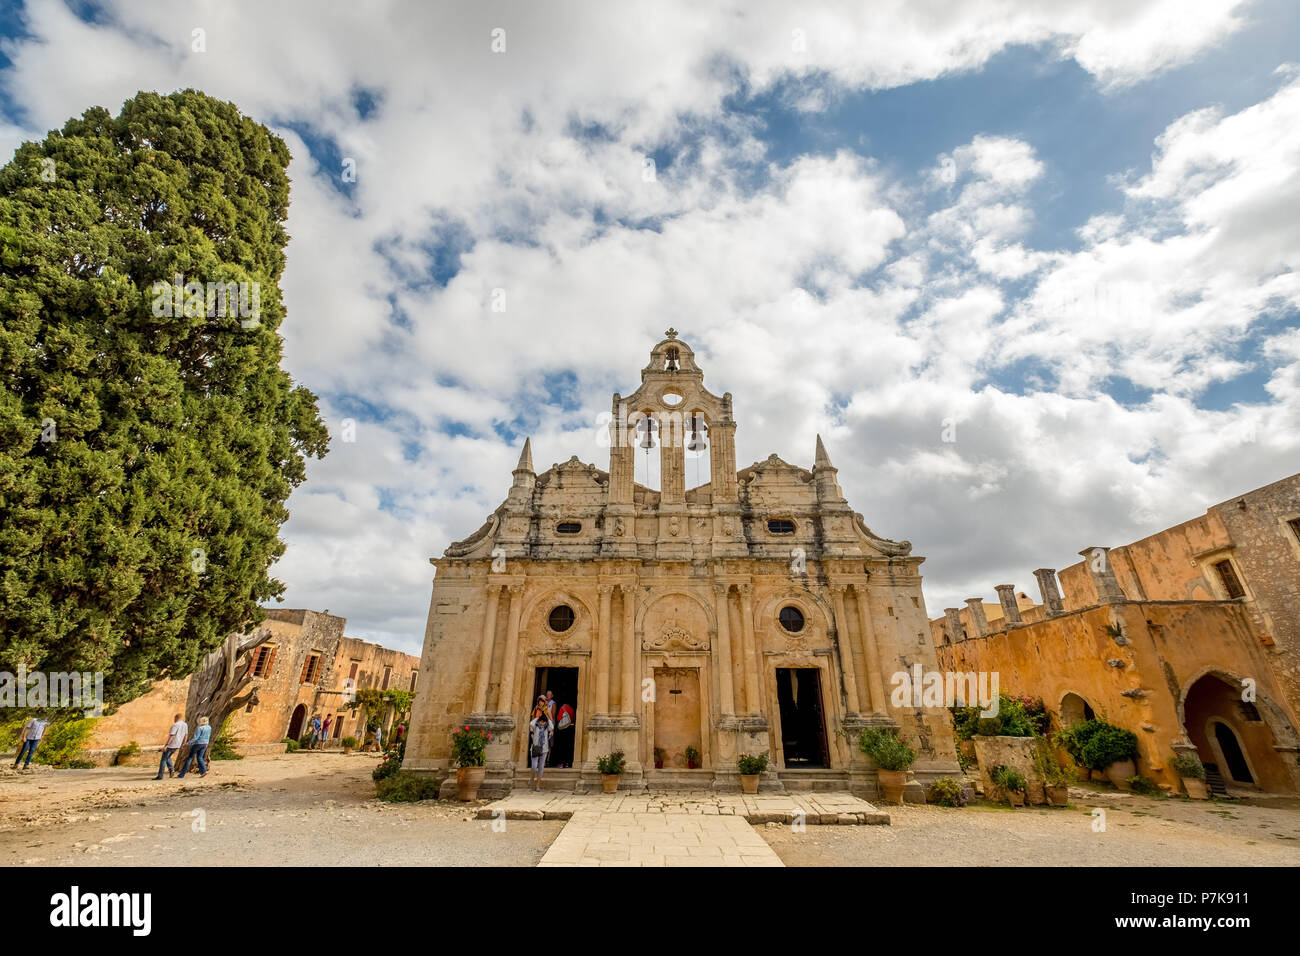 Monastic Church Greek Orthodox two-nave church, National Monument of Crete in the struggle for independence, Moni Arkadi Monastery, Crete, Greece, Europe - Stock Image